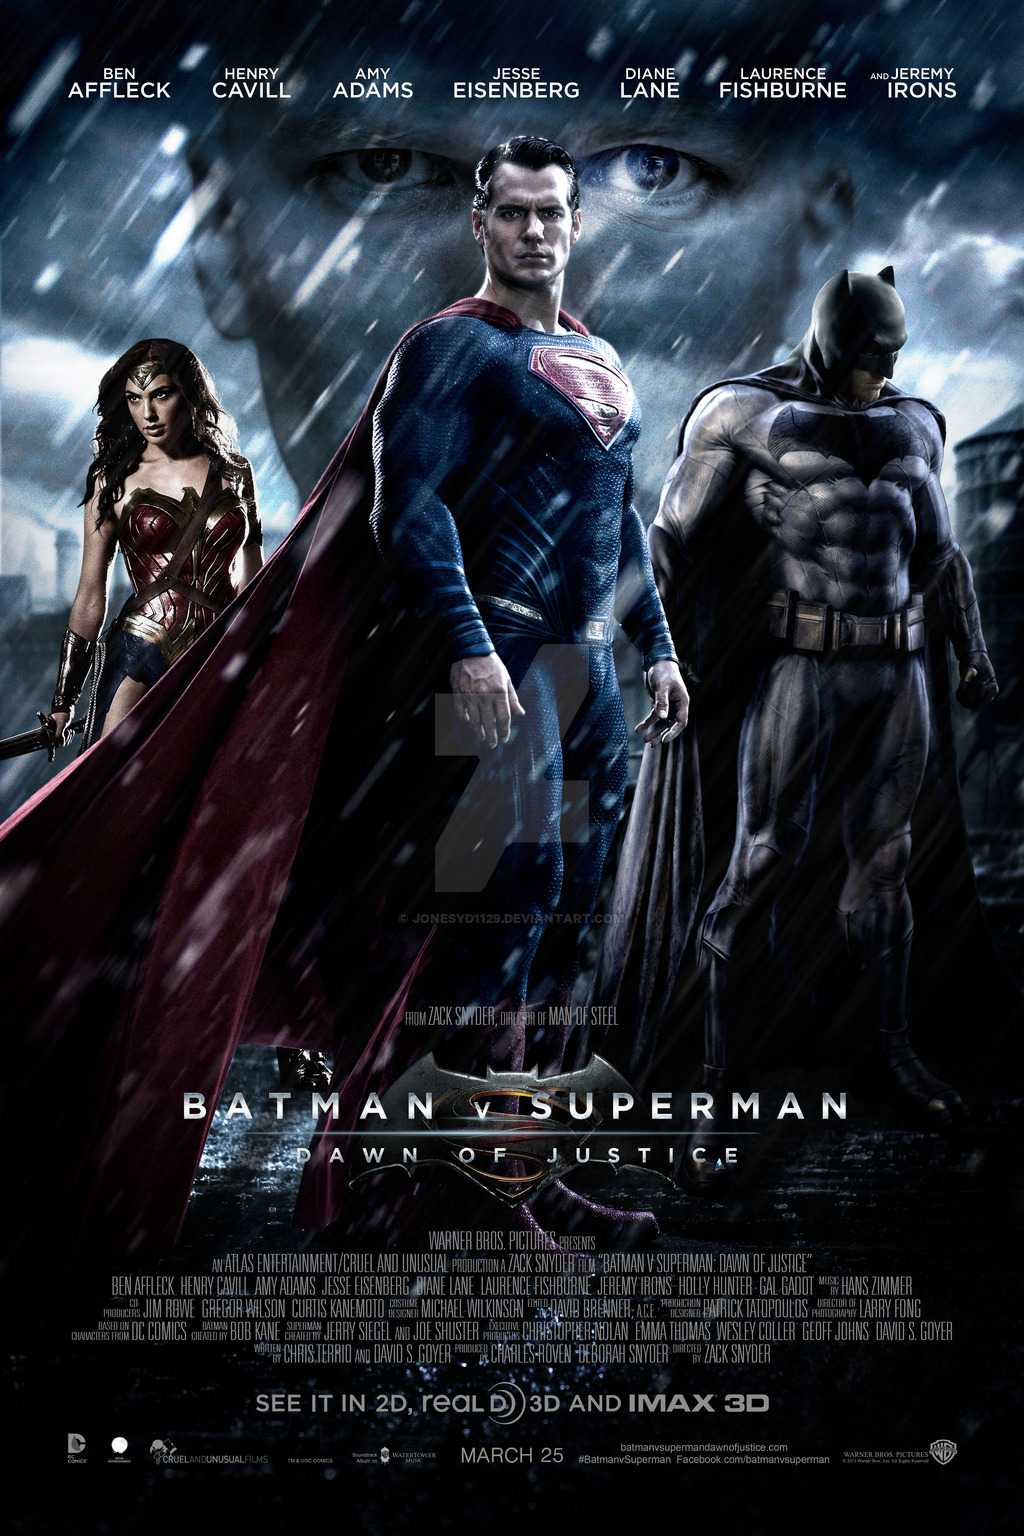 The official Batman vs Superman movie poster